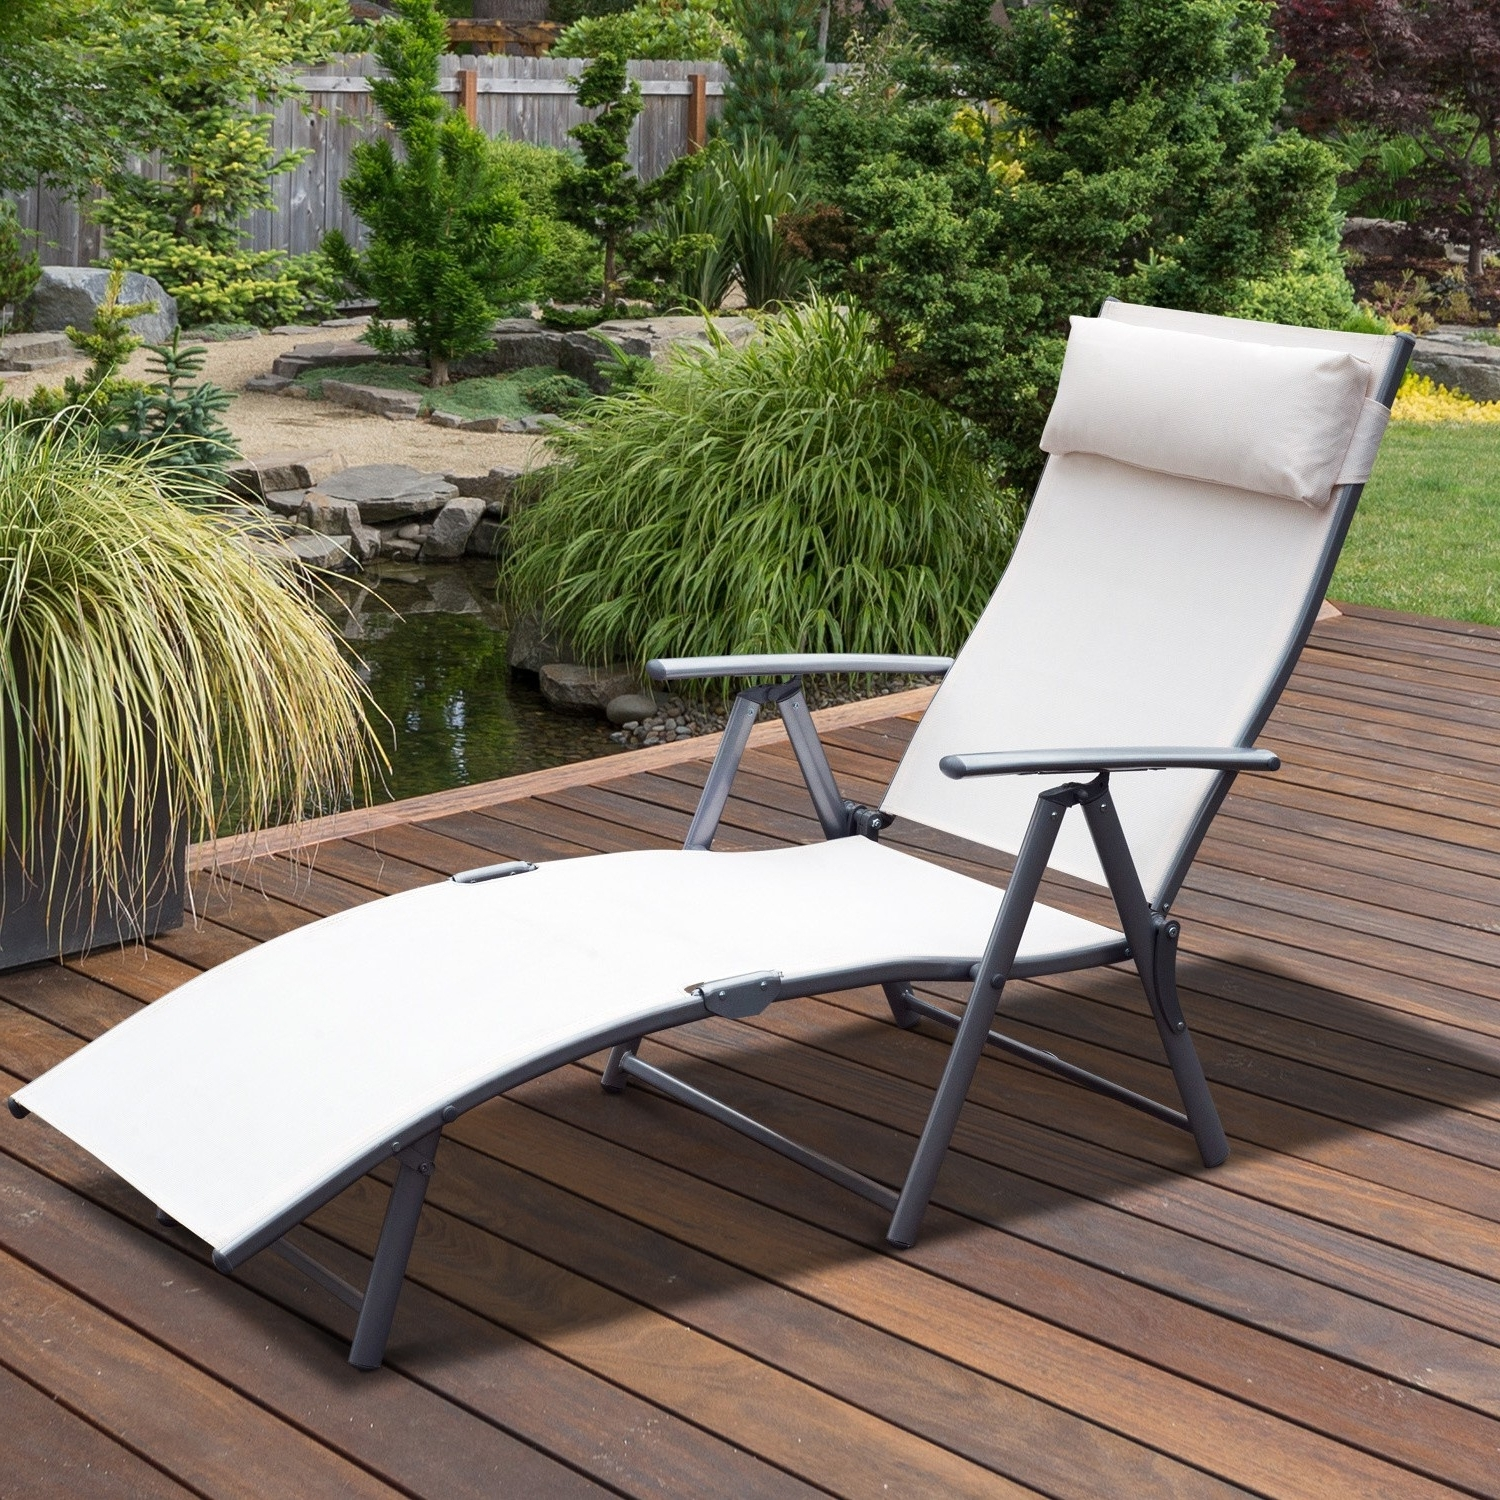 2017 Heavy Duty Chaise Lounge Chairs Throughout Lounge Chair : Chairs Patio Chairs For Large People Lounge Chairs (View 11 of 15)